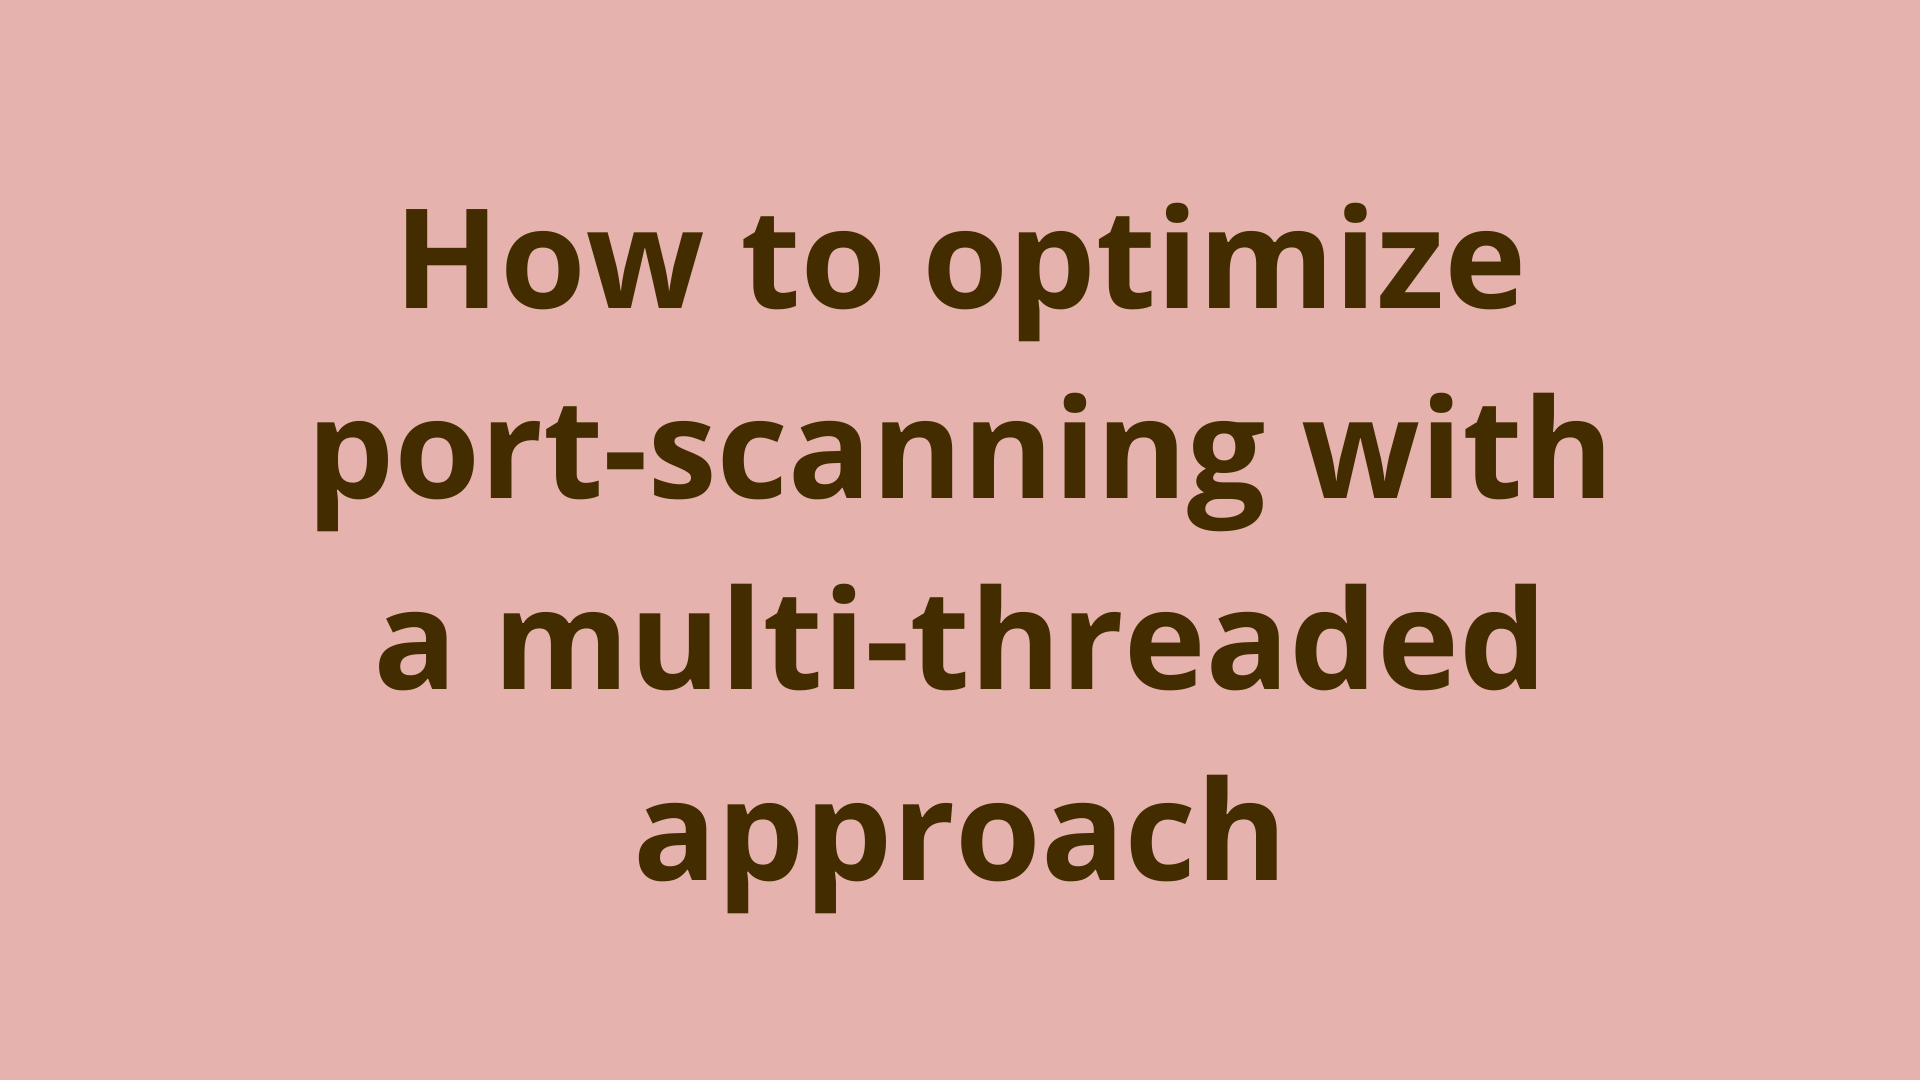 Image of How to optimize port-scanning with a multi-threaded approach